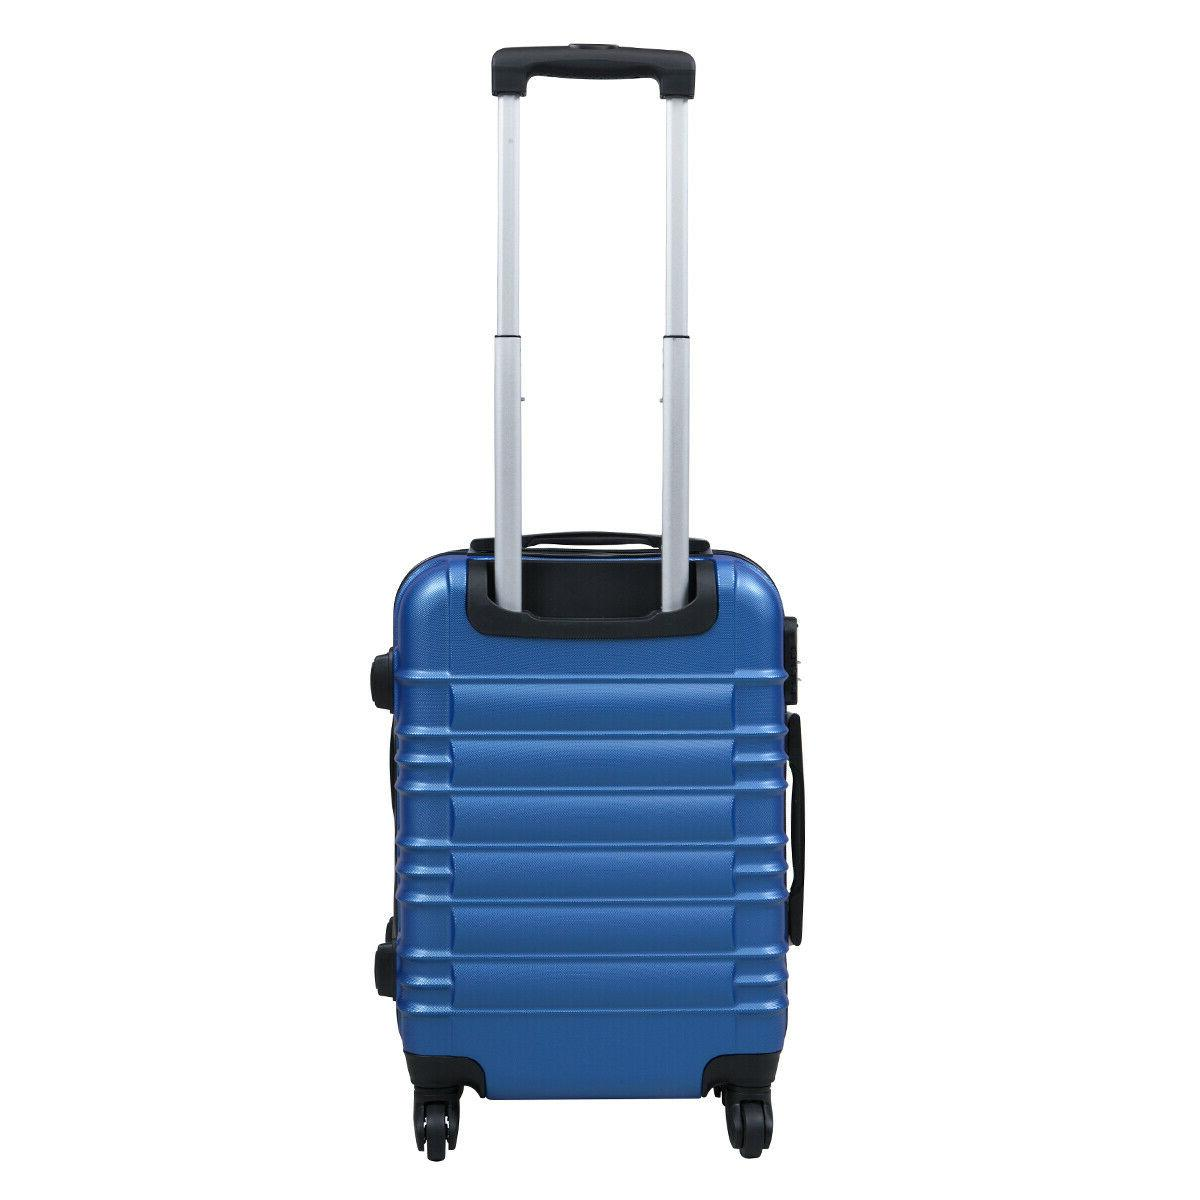 """20"""" ABS Luggage Hardside Nested Trolley Suitcase Blue"""